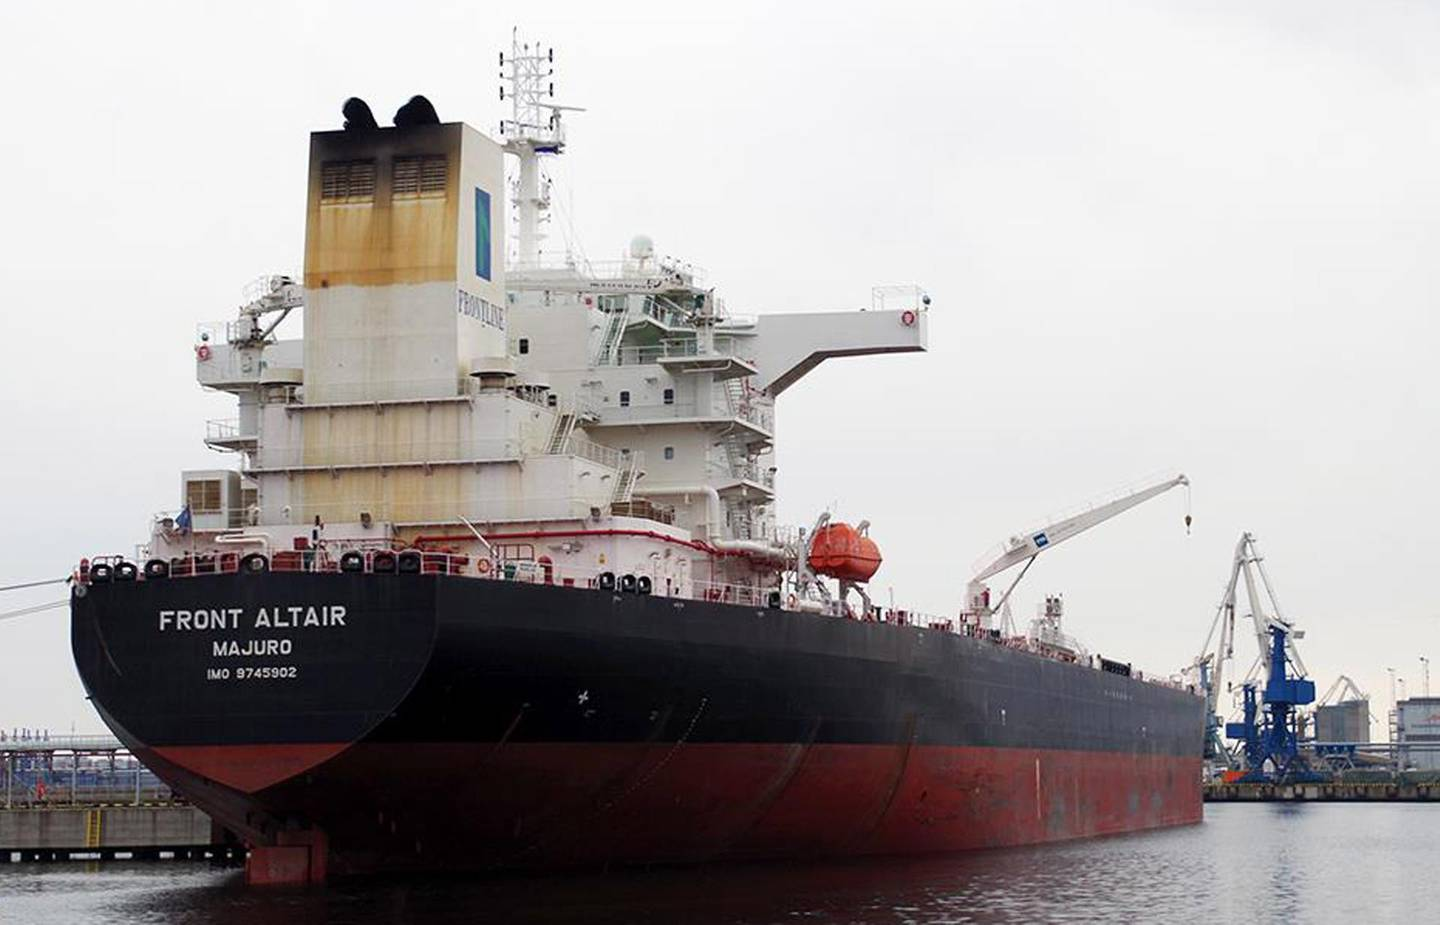 epa07645033 A picture provided by Artjom Lofitski shows the Norwegian crude oil tanker Front Altair at the port of Muuga, Estonia, 29 April 2018 (issued 13 June 2019). According to the Norwegian Maritime Authority, the Front Altair is currently on fire in the Gulf of Oman after allegedly being attacked and in the early morning of 13 June between the UAE and Iran.  EPA/ARTJOM LOFITSKI / MARINETRAFFIC.COM MANDATROY CREDIT: ARTJOM LOFITSKI HANDOUT EDITORIAL USE ONLY/NO SALES